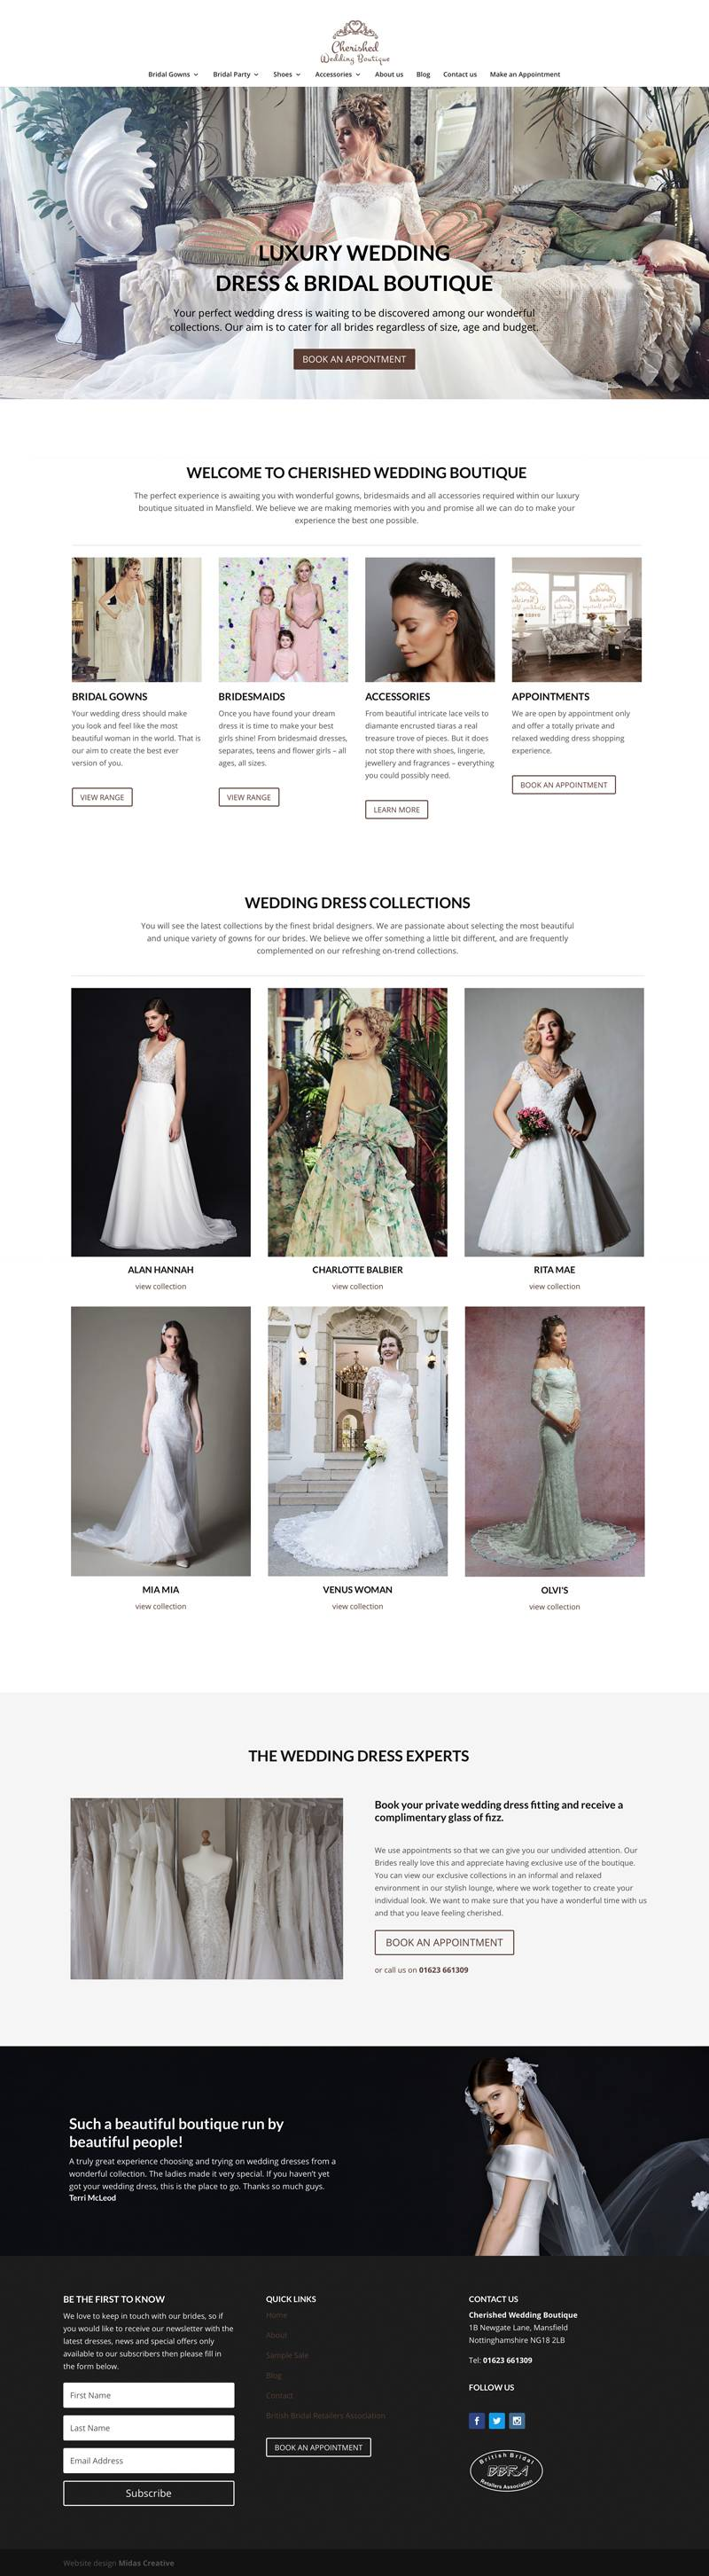 wedding dress shop website design